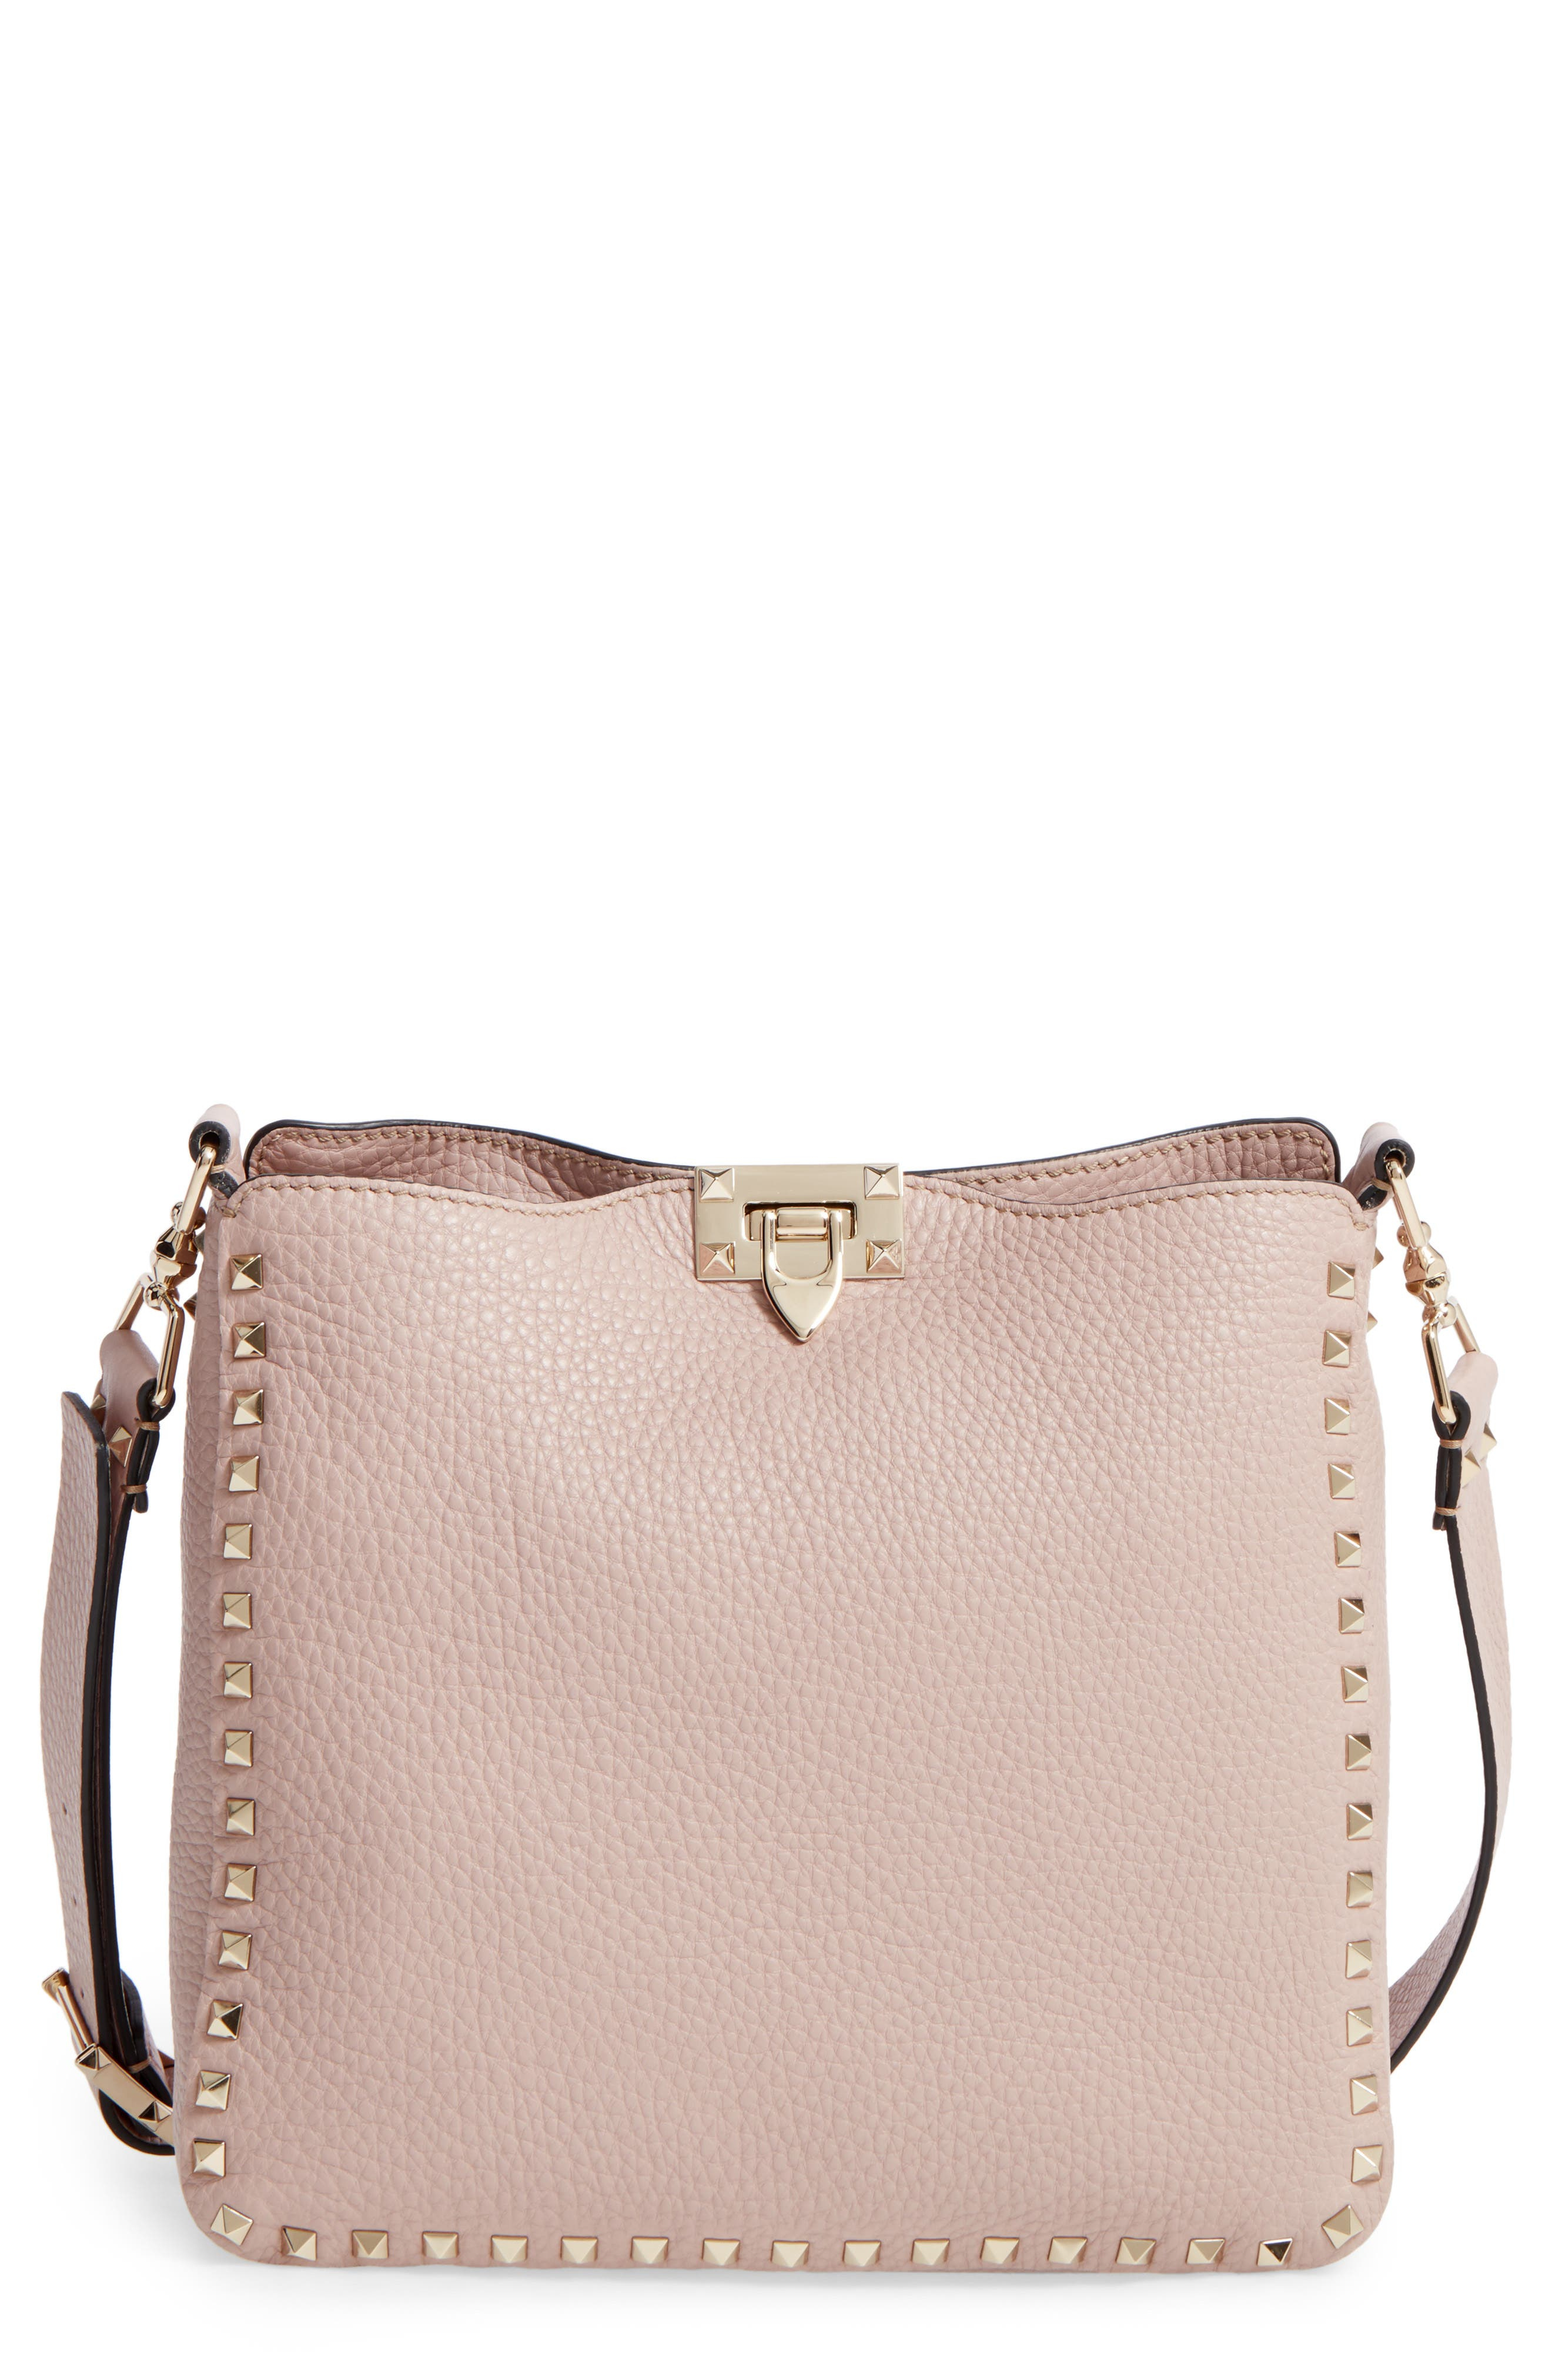 Vitello Rockstud Leather Hobo,                             Main thumbnail 1, color,                             950